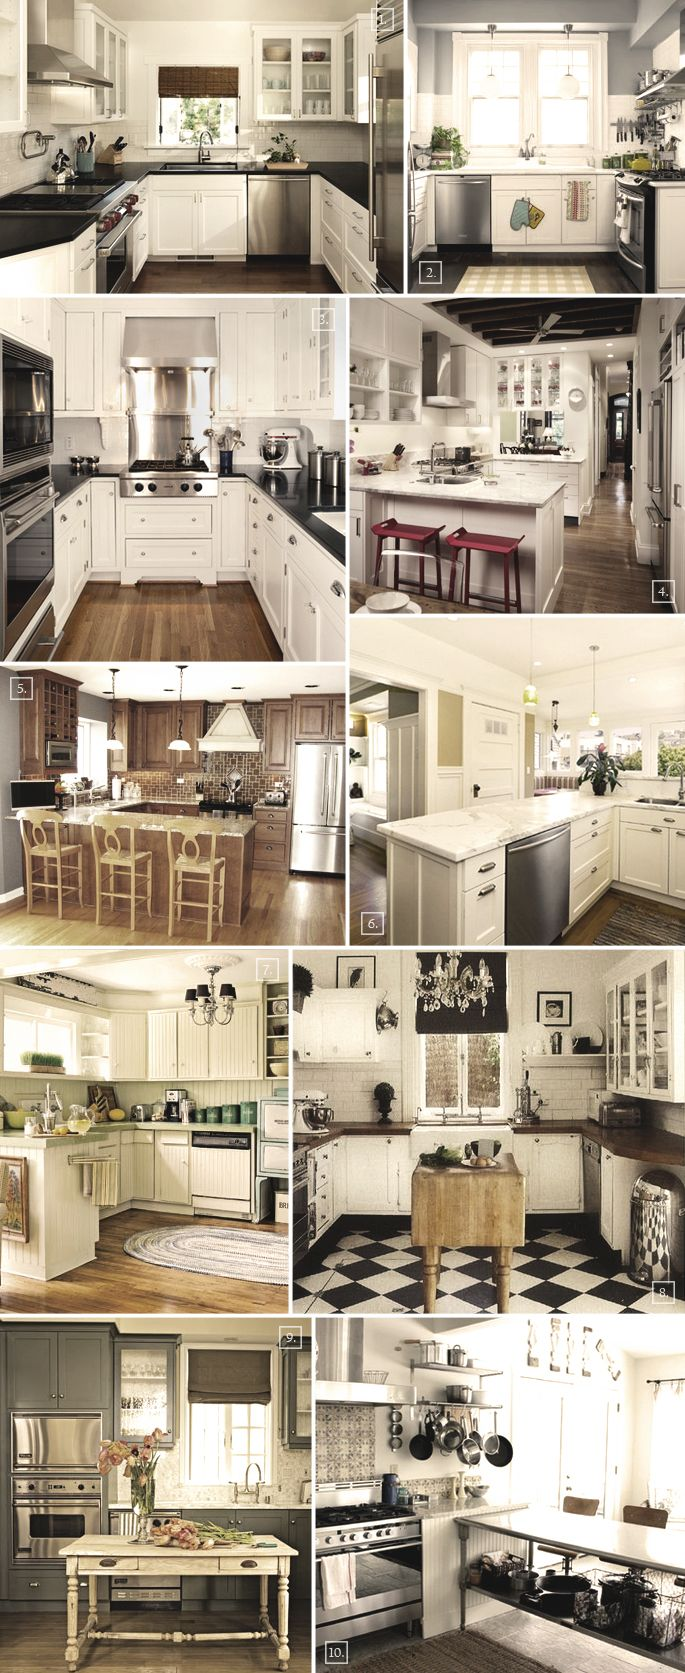 U shaped kitchen designs, the compact ones, are the most efficient layouts you can have. Just spin around and you can reach different cabinets, the sink, cooker, etc. A few layout ideas include: Having the U wrap around three walls just like in photos: (1) (2) (3) If you have a larger kitchen space then […]